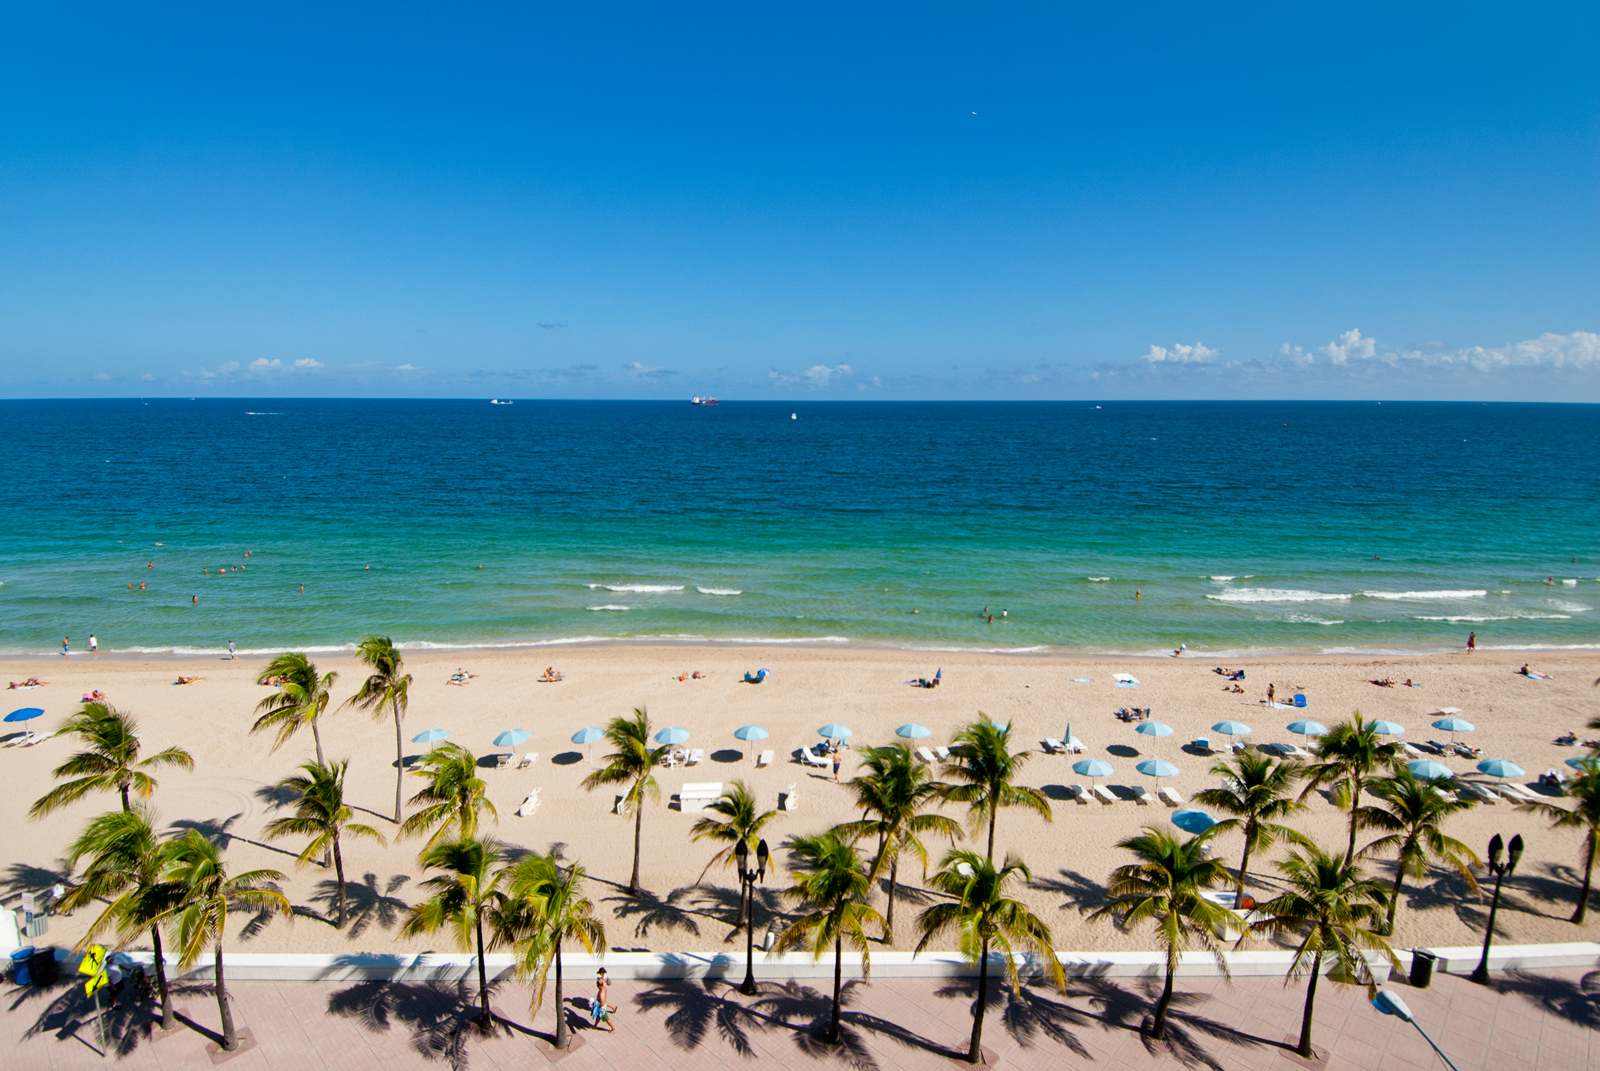 50 New Hotel Openings For 2018 | North America | The Dalmar – Fort Lauderdale, Florida, US